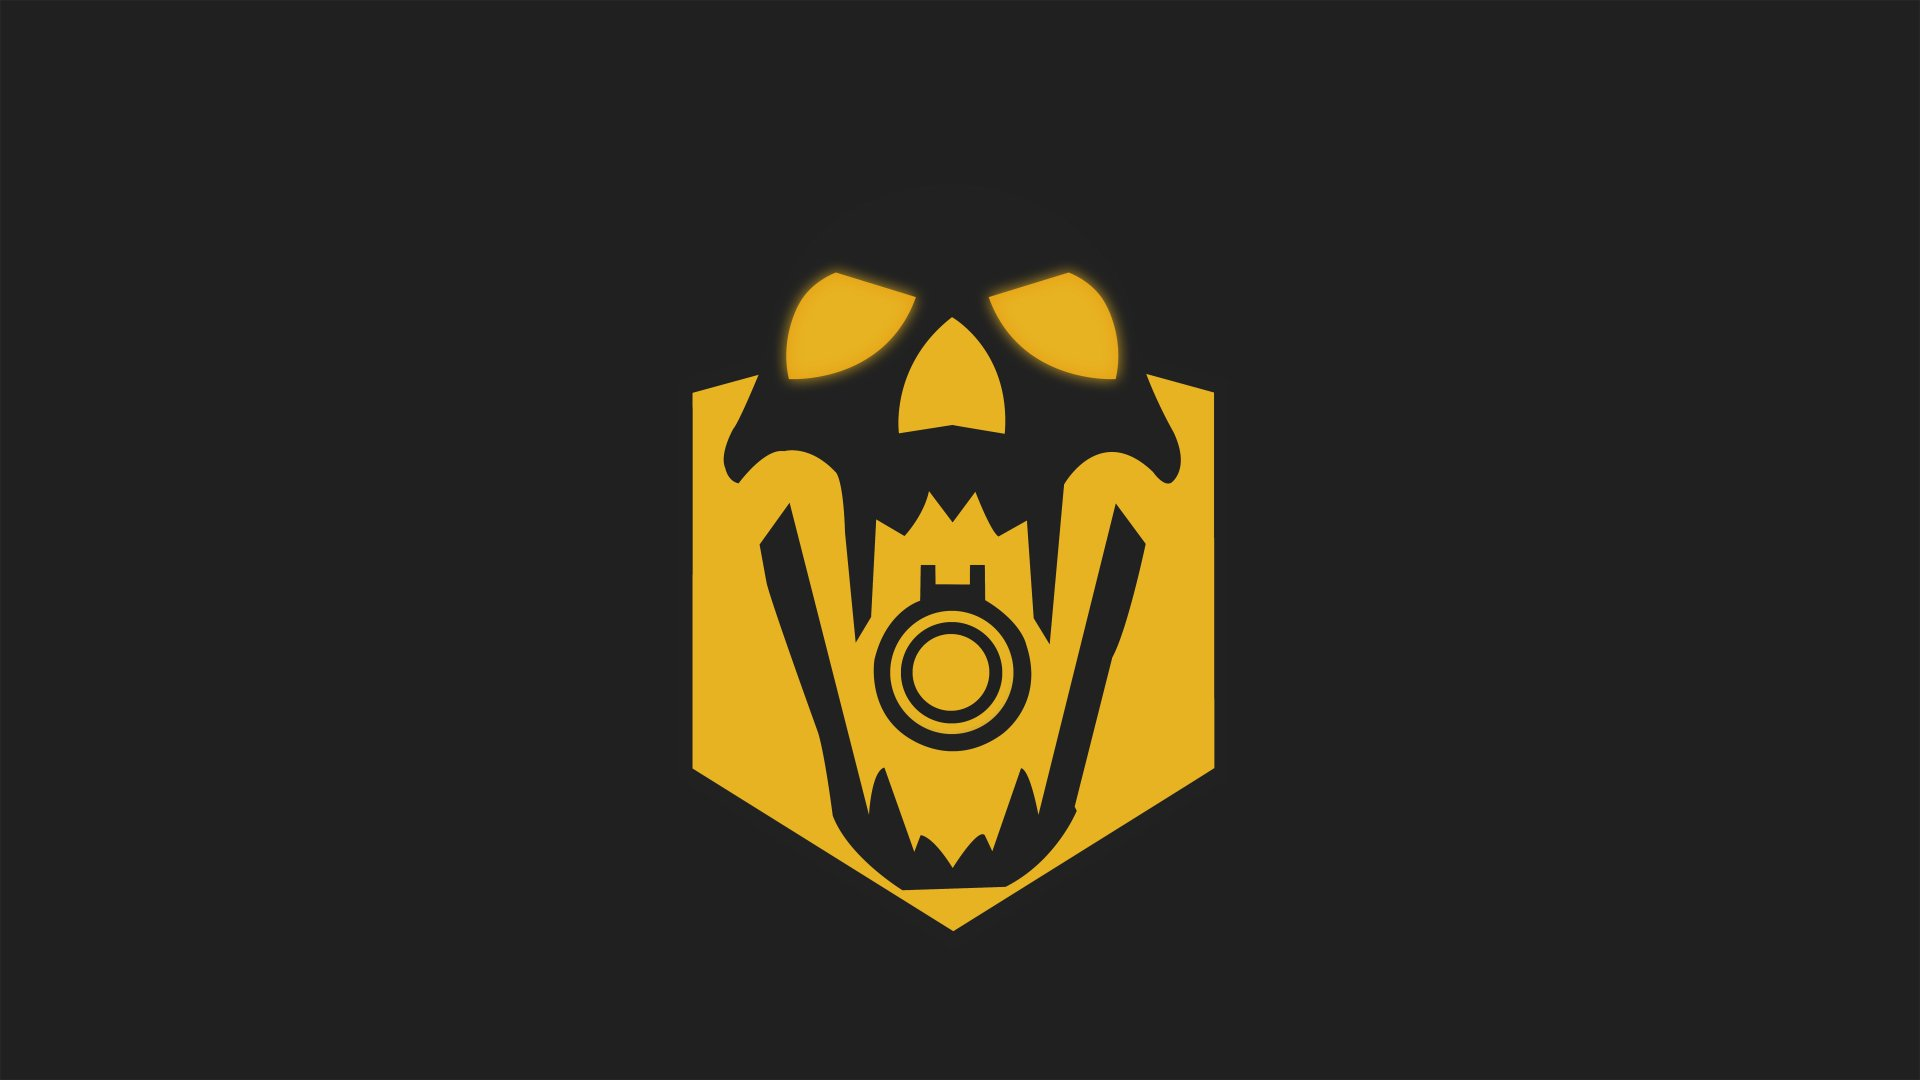 Video Game - Tom Clancy's Rainbow Six: Siege  Blackbeard (Tom Clancy's Rainbow Six: Siege) Minimalist Skull Yellow Wallpaper